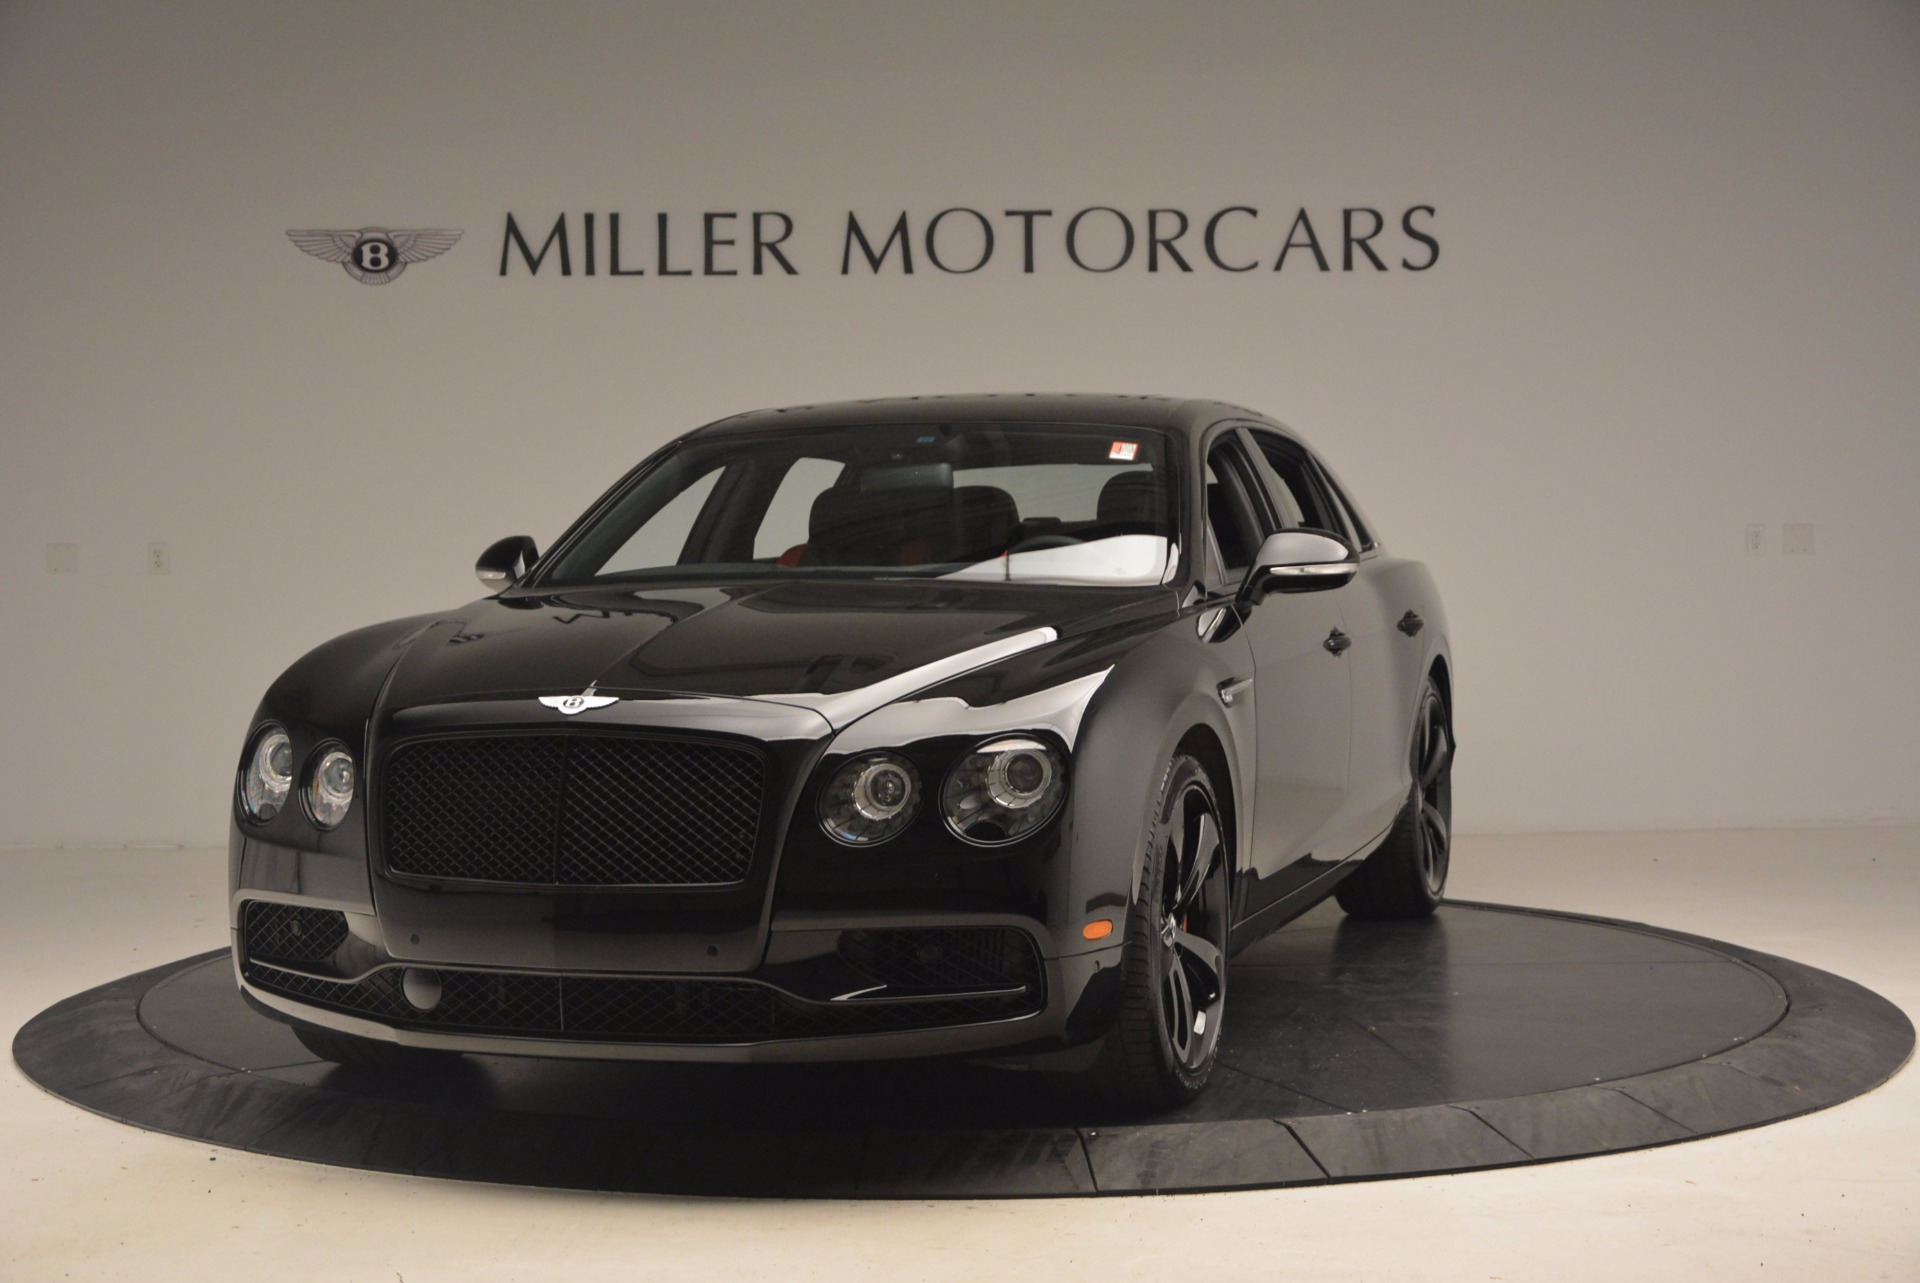 New 2017 Bentley Flying Spur W12 S for sale Sold at Alfa Romeo of Westport in Westport CT 06880 1